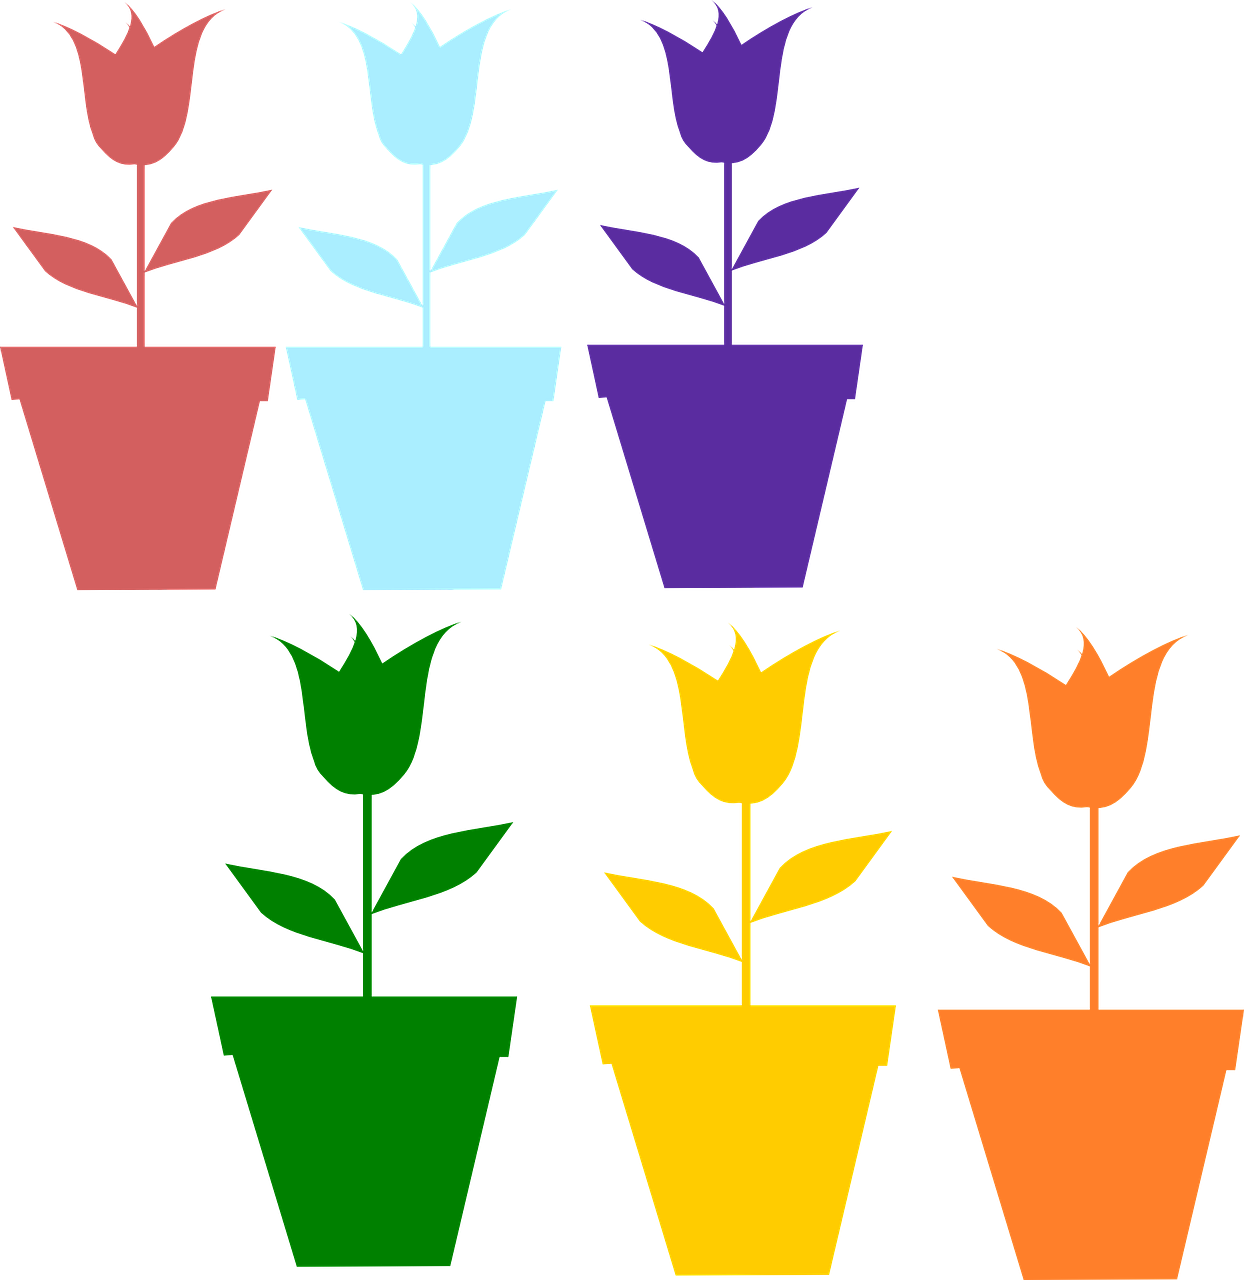 tulips,flowers,pots,green,blue,yellow,purple,pink,orange,silhouette,springtime,april,may,free vector graphics,free pictures, free photos, free images, royalty free, free illustrations, public domain